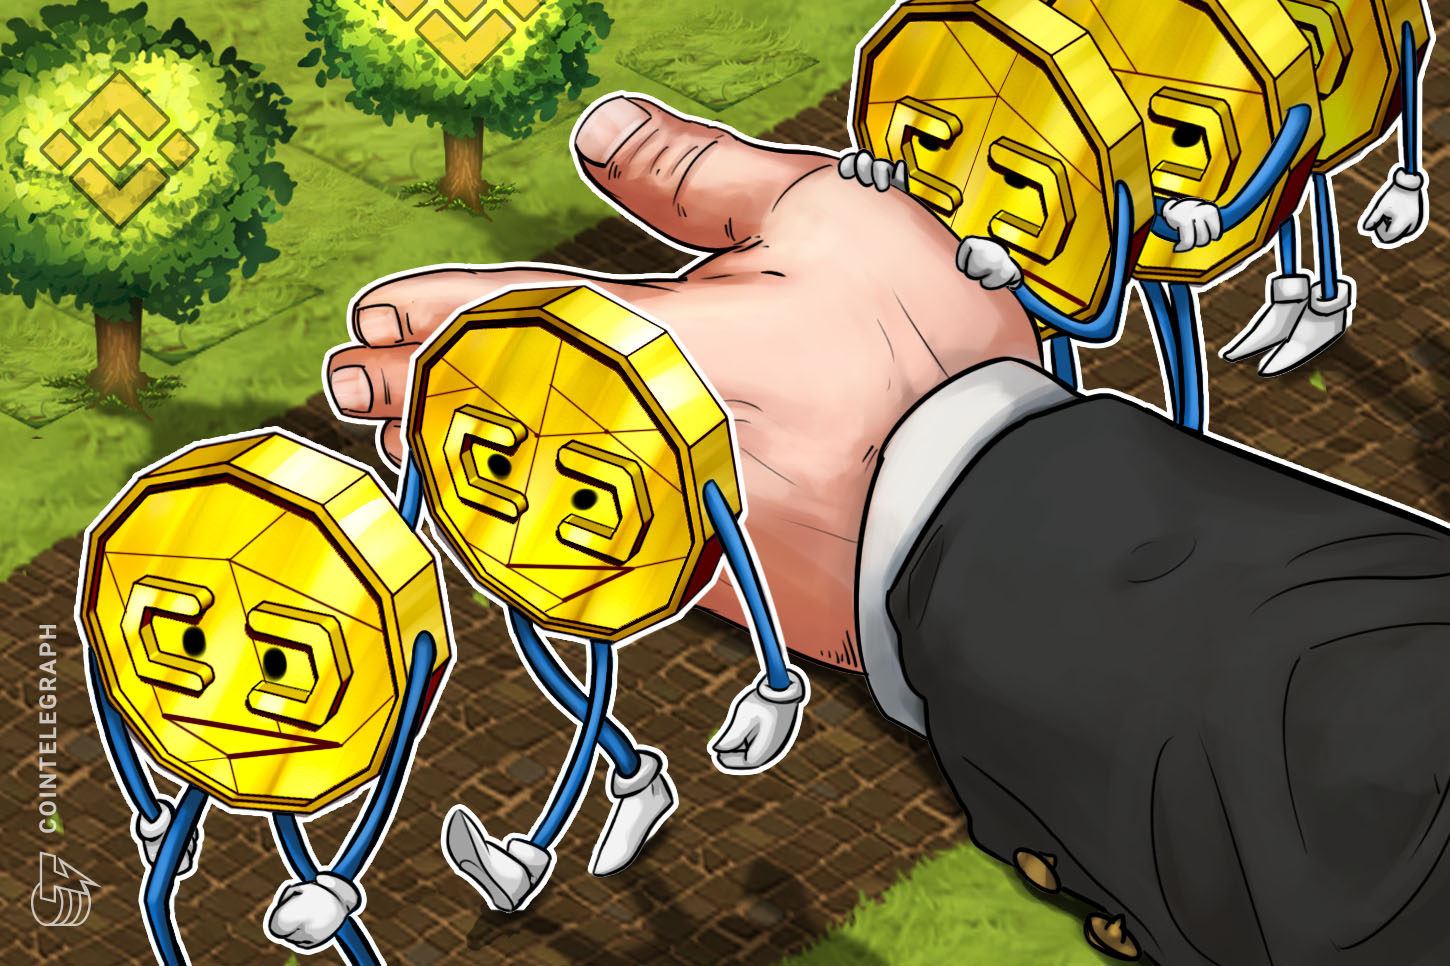 Binance to delist EUR, GBP and AUD margin trading pairs